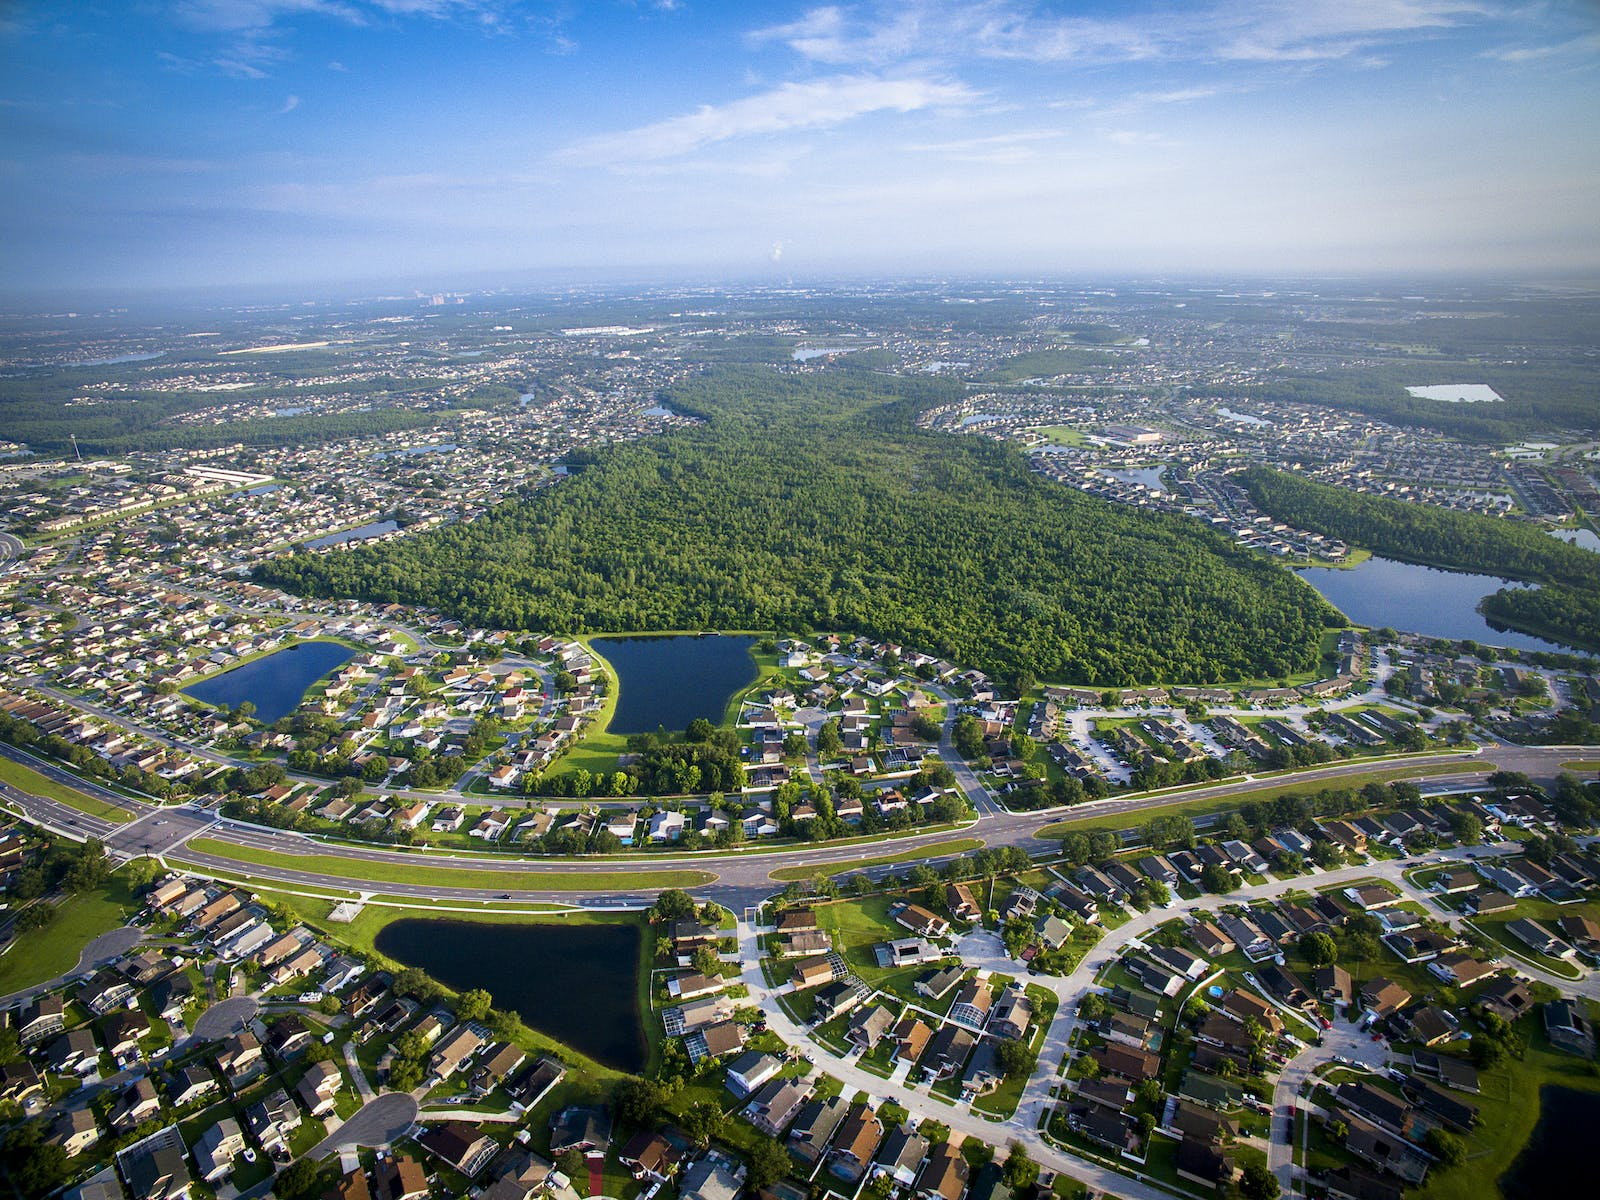 Aerial view of Kissimmee, FL